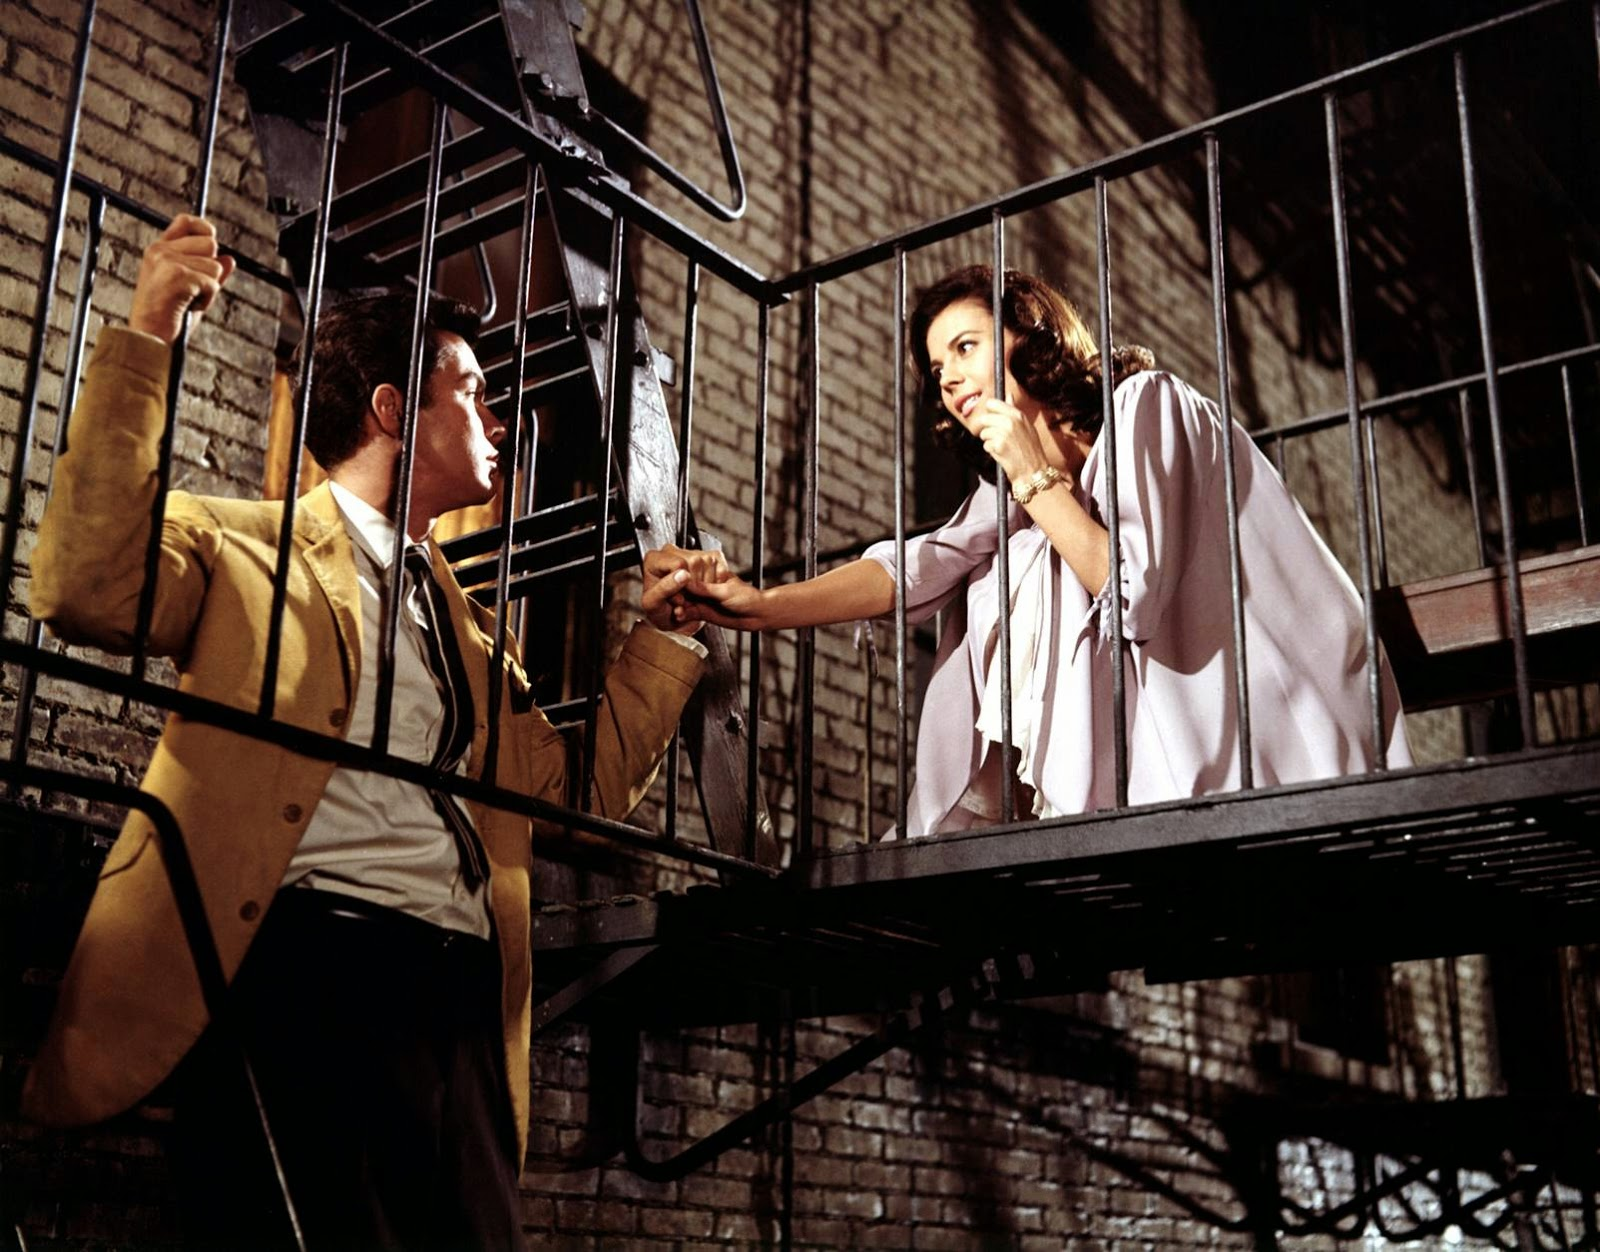 West Side Story está protagonizada por Natalie Wood y Richard Beymer